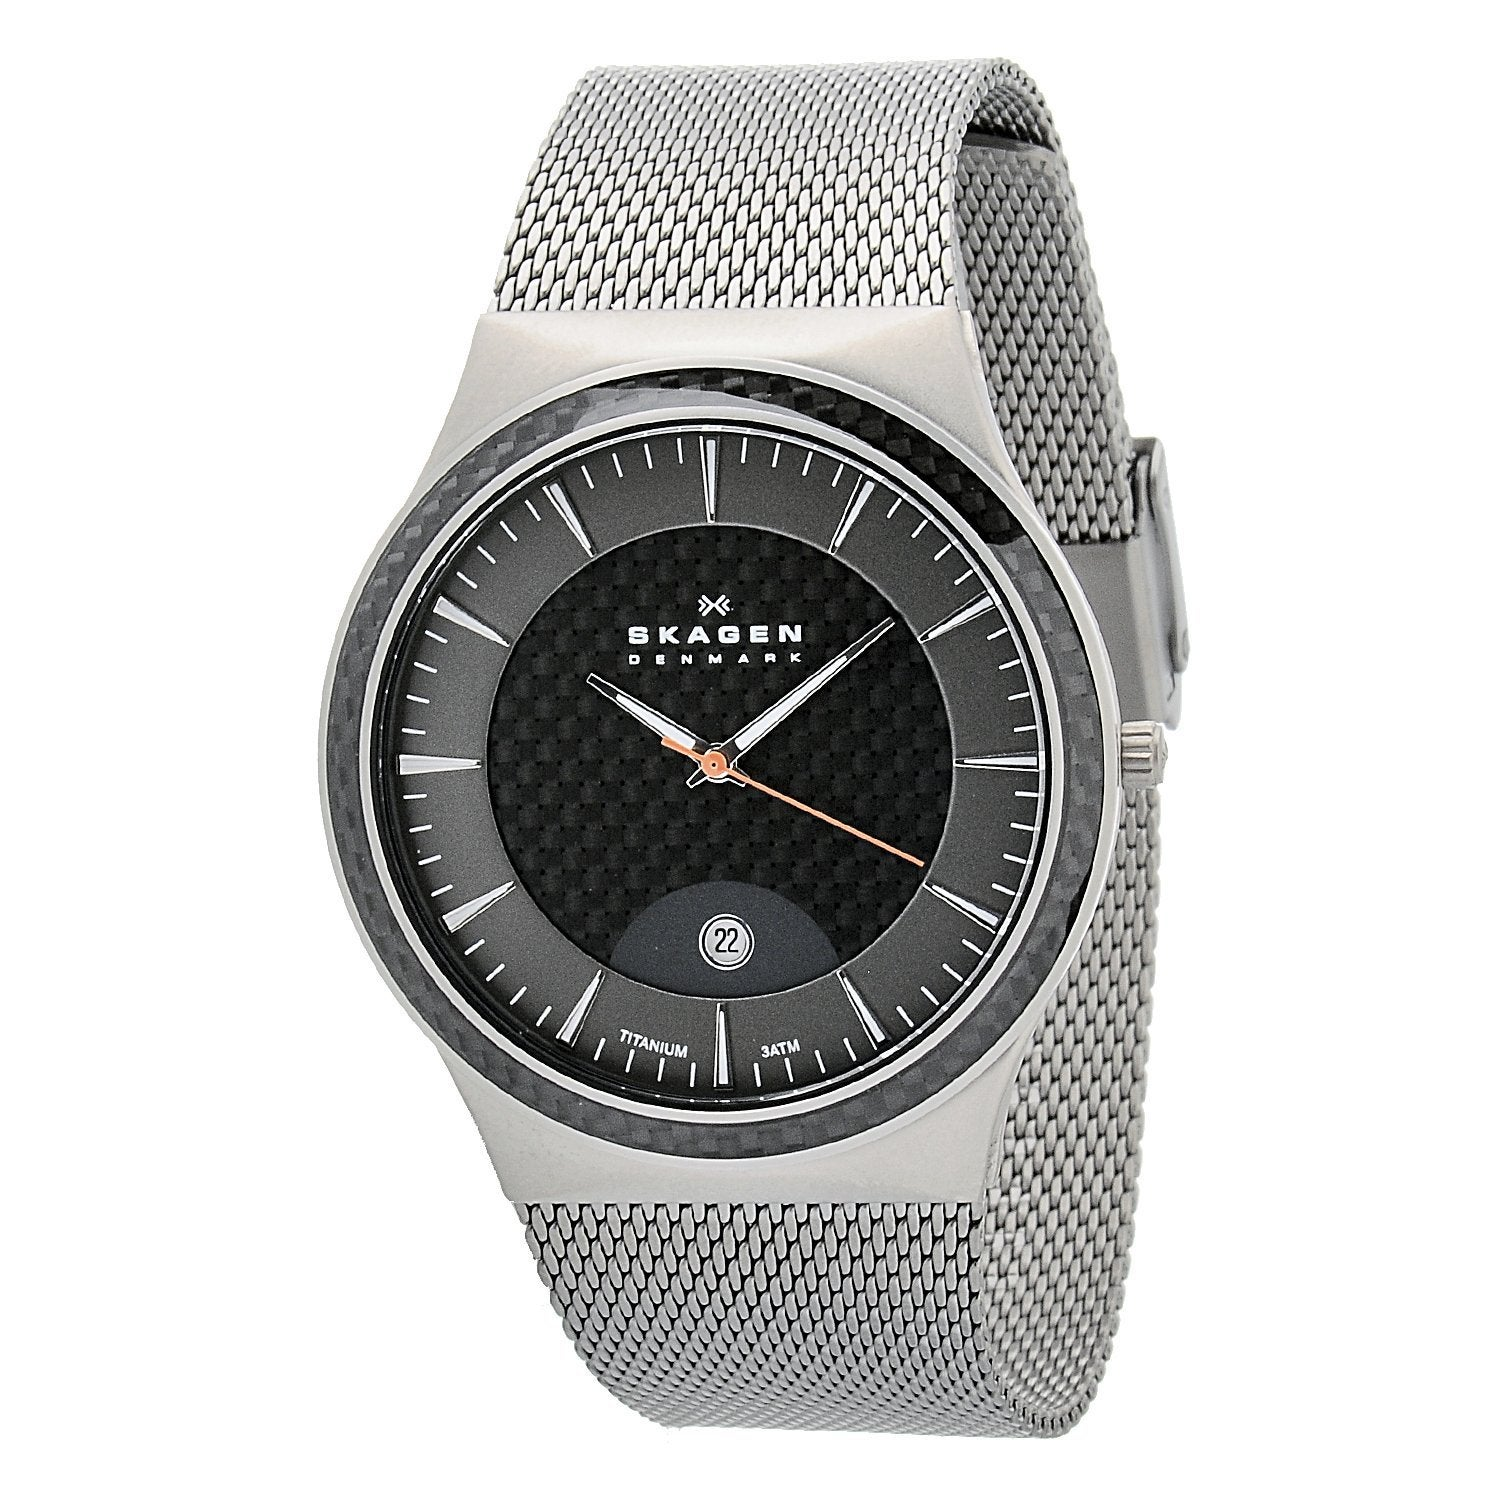 Eziba Collection Skagen Men's Carbon Fiber Dial Stainless Steel Watch at Sears.com